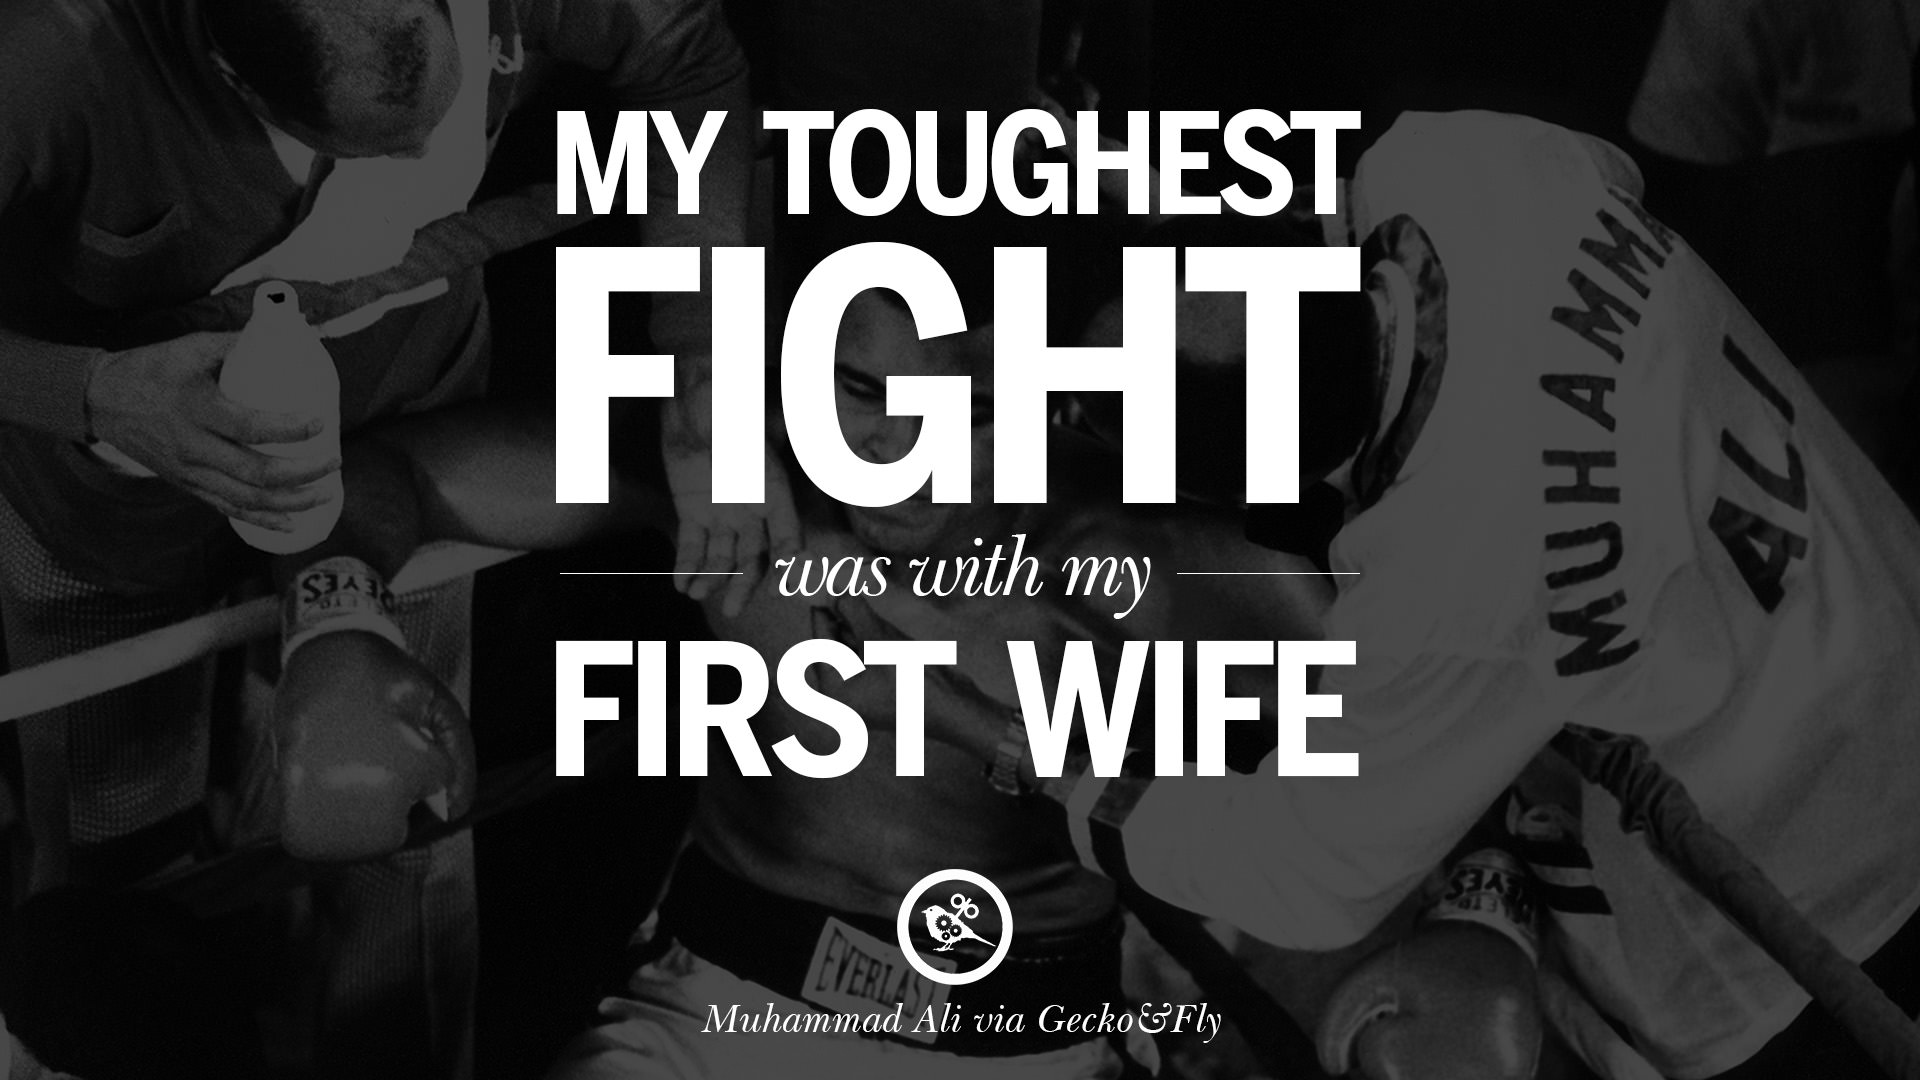 Winning Quotes | 16 Winning Quotes By Muhammad Ali The Greatest